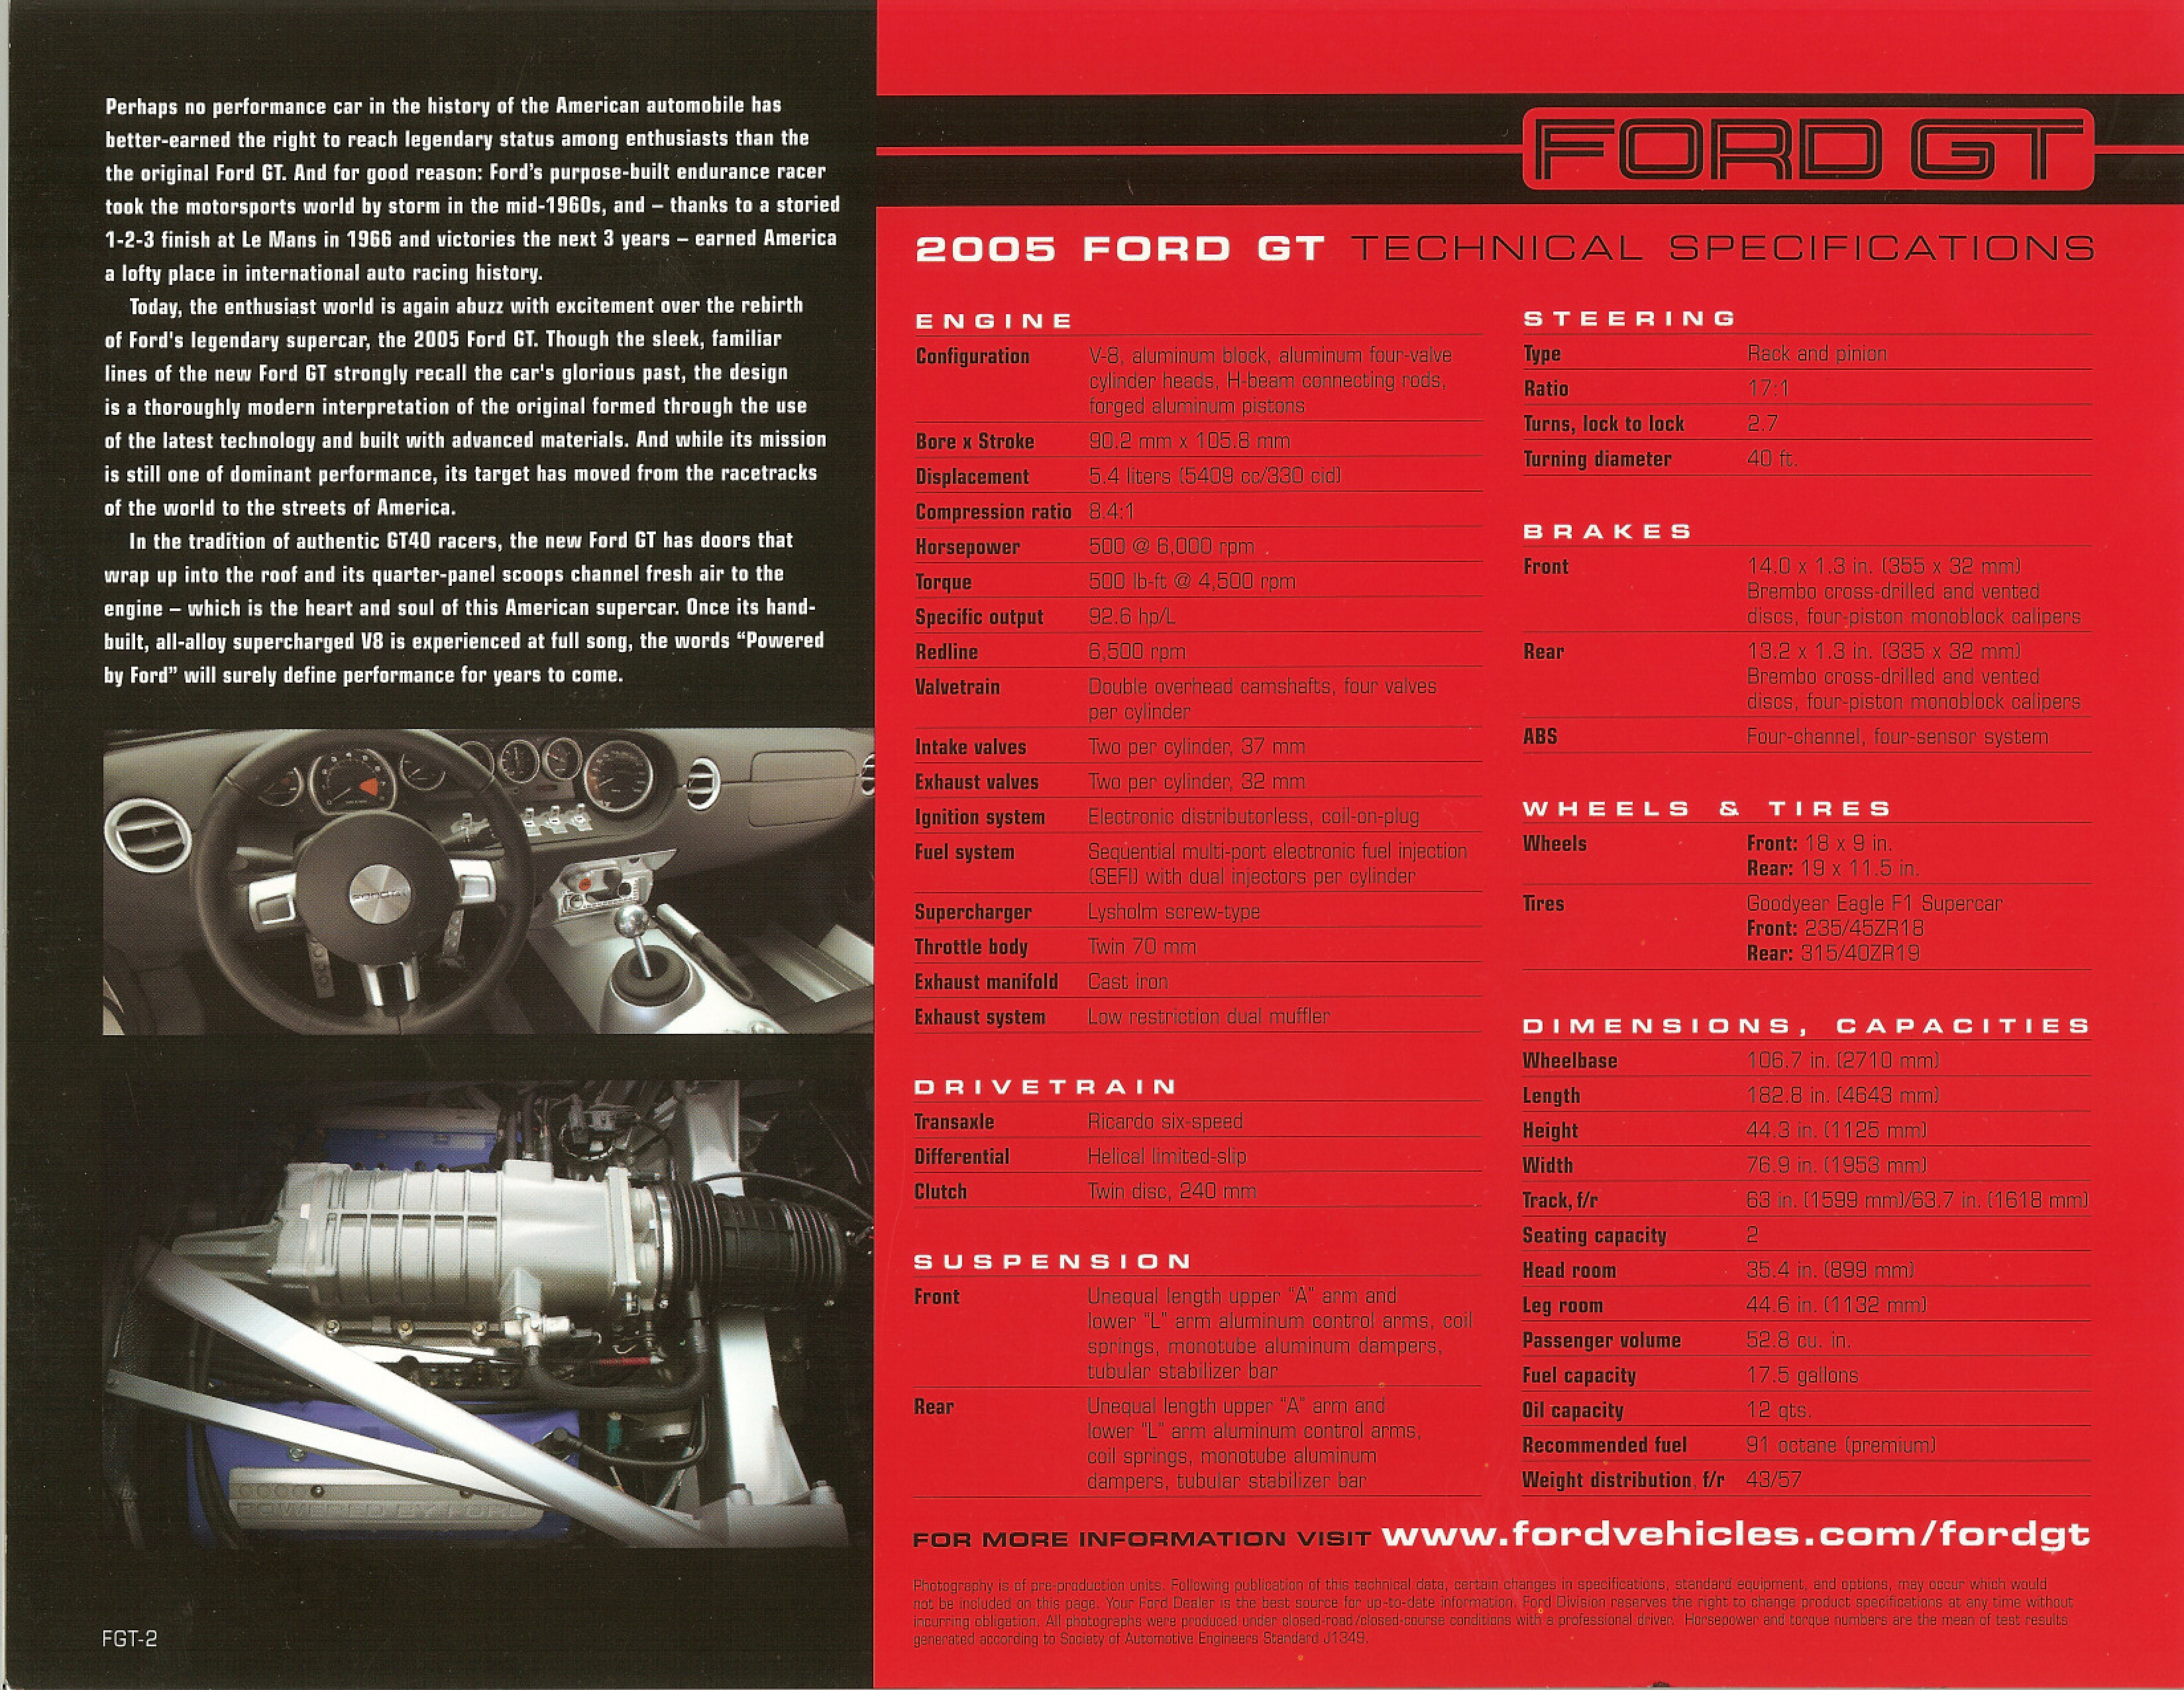 2005 Ford GT Technical Specifications